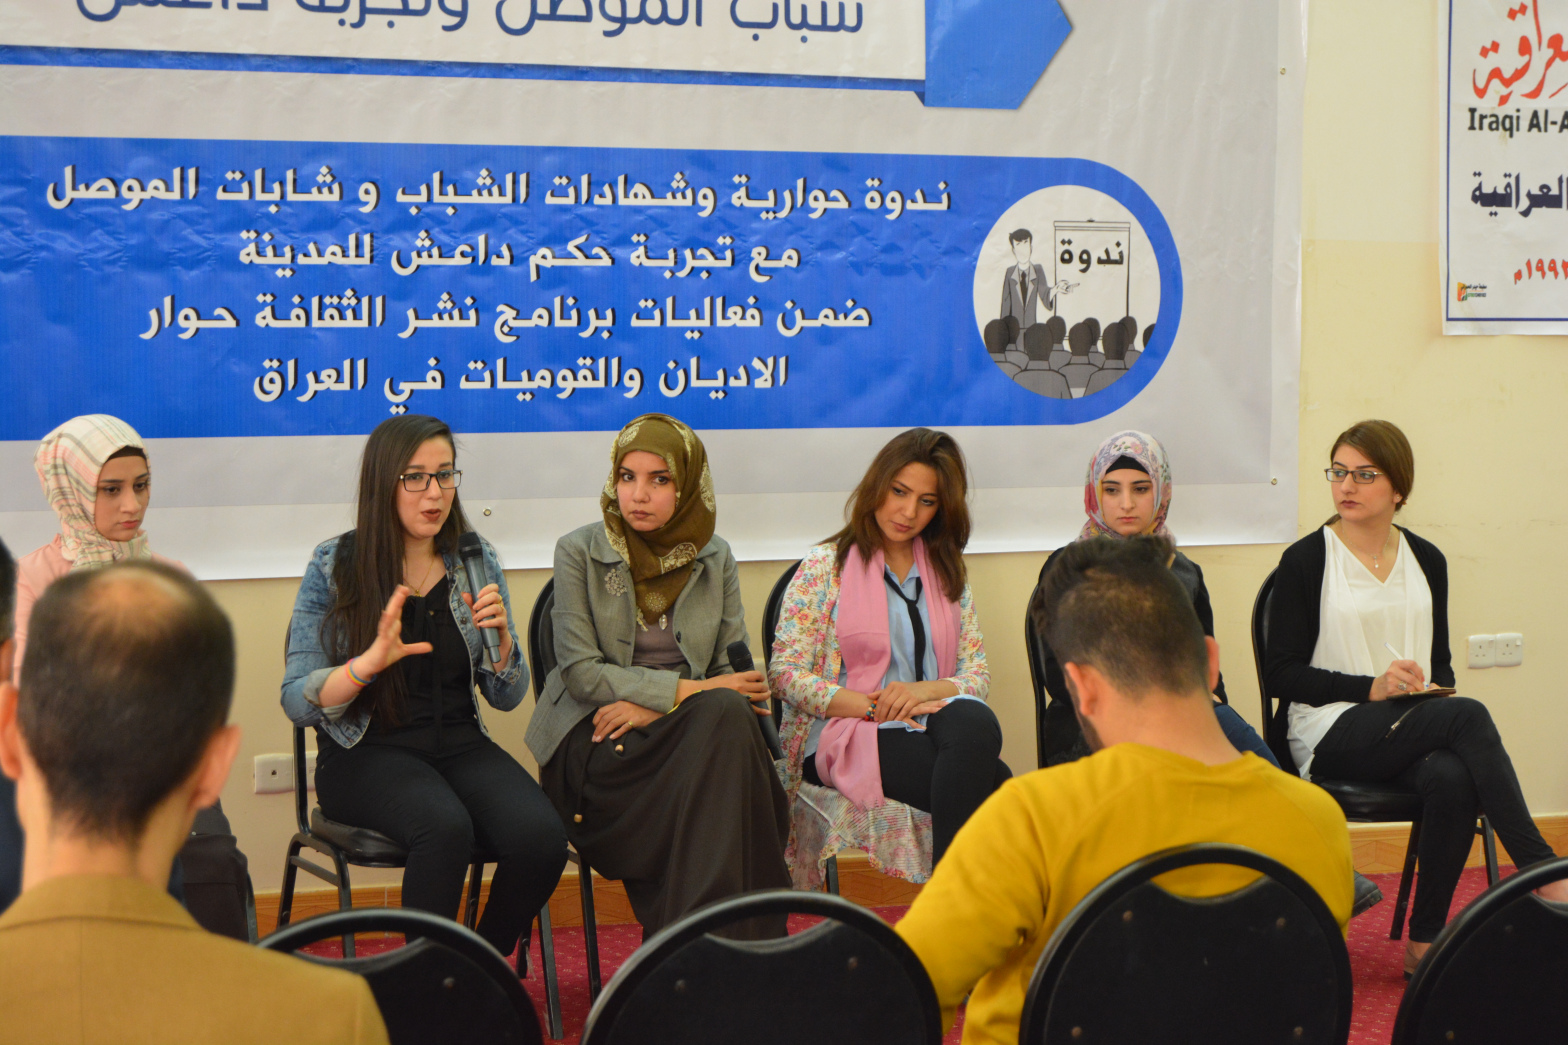 In Najaf, young women from Mosul and their testimonies about the period of ISIS control of the city